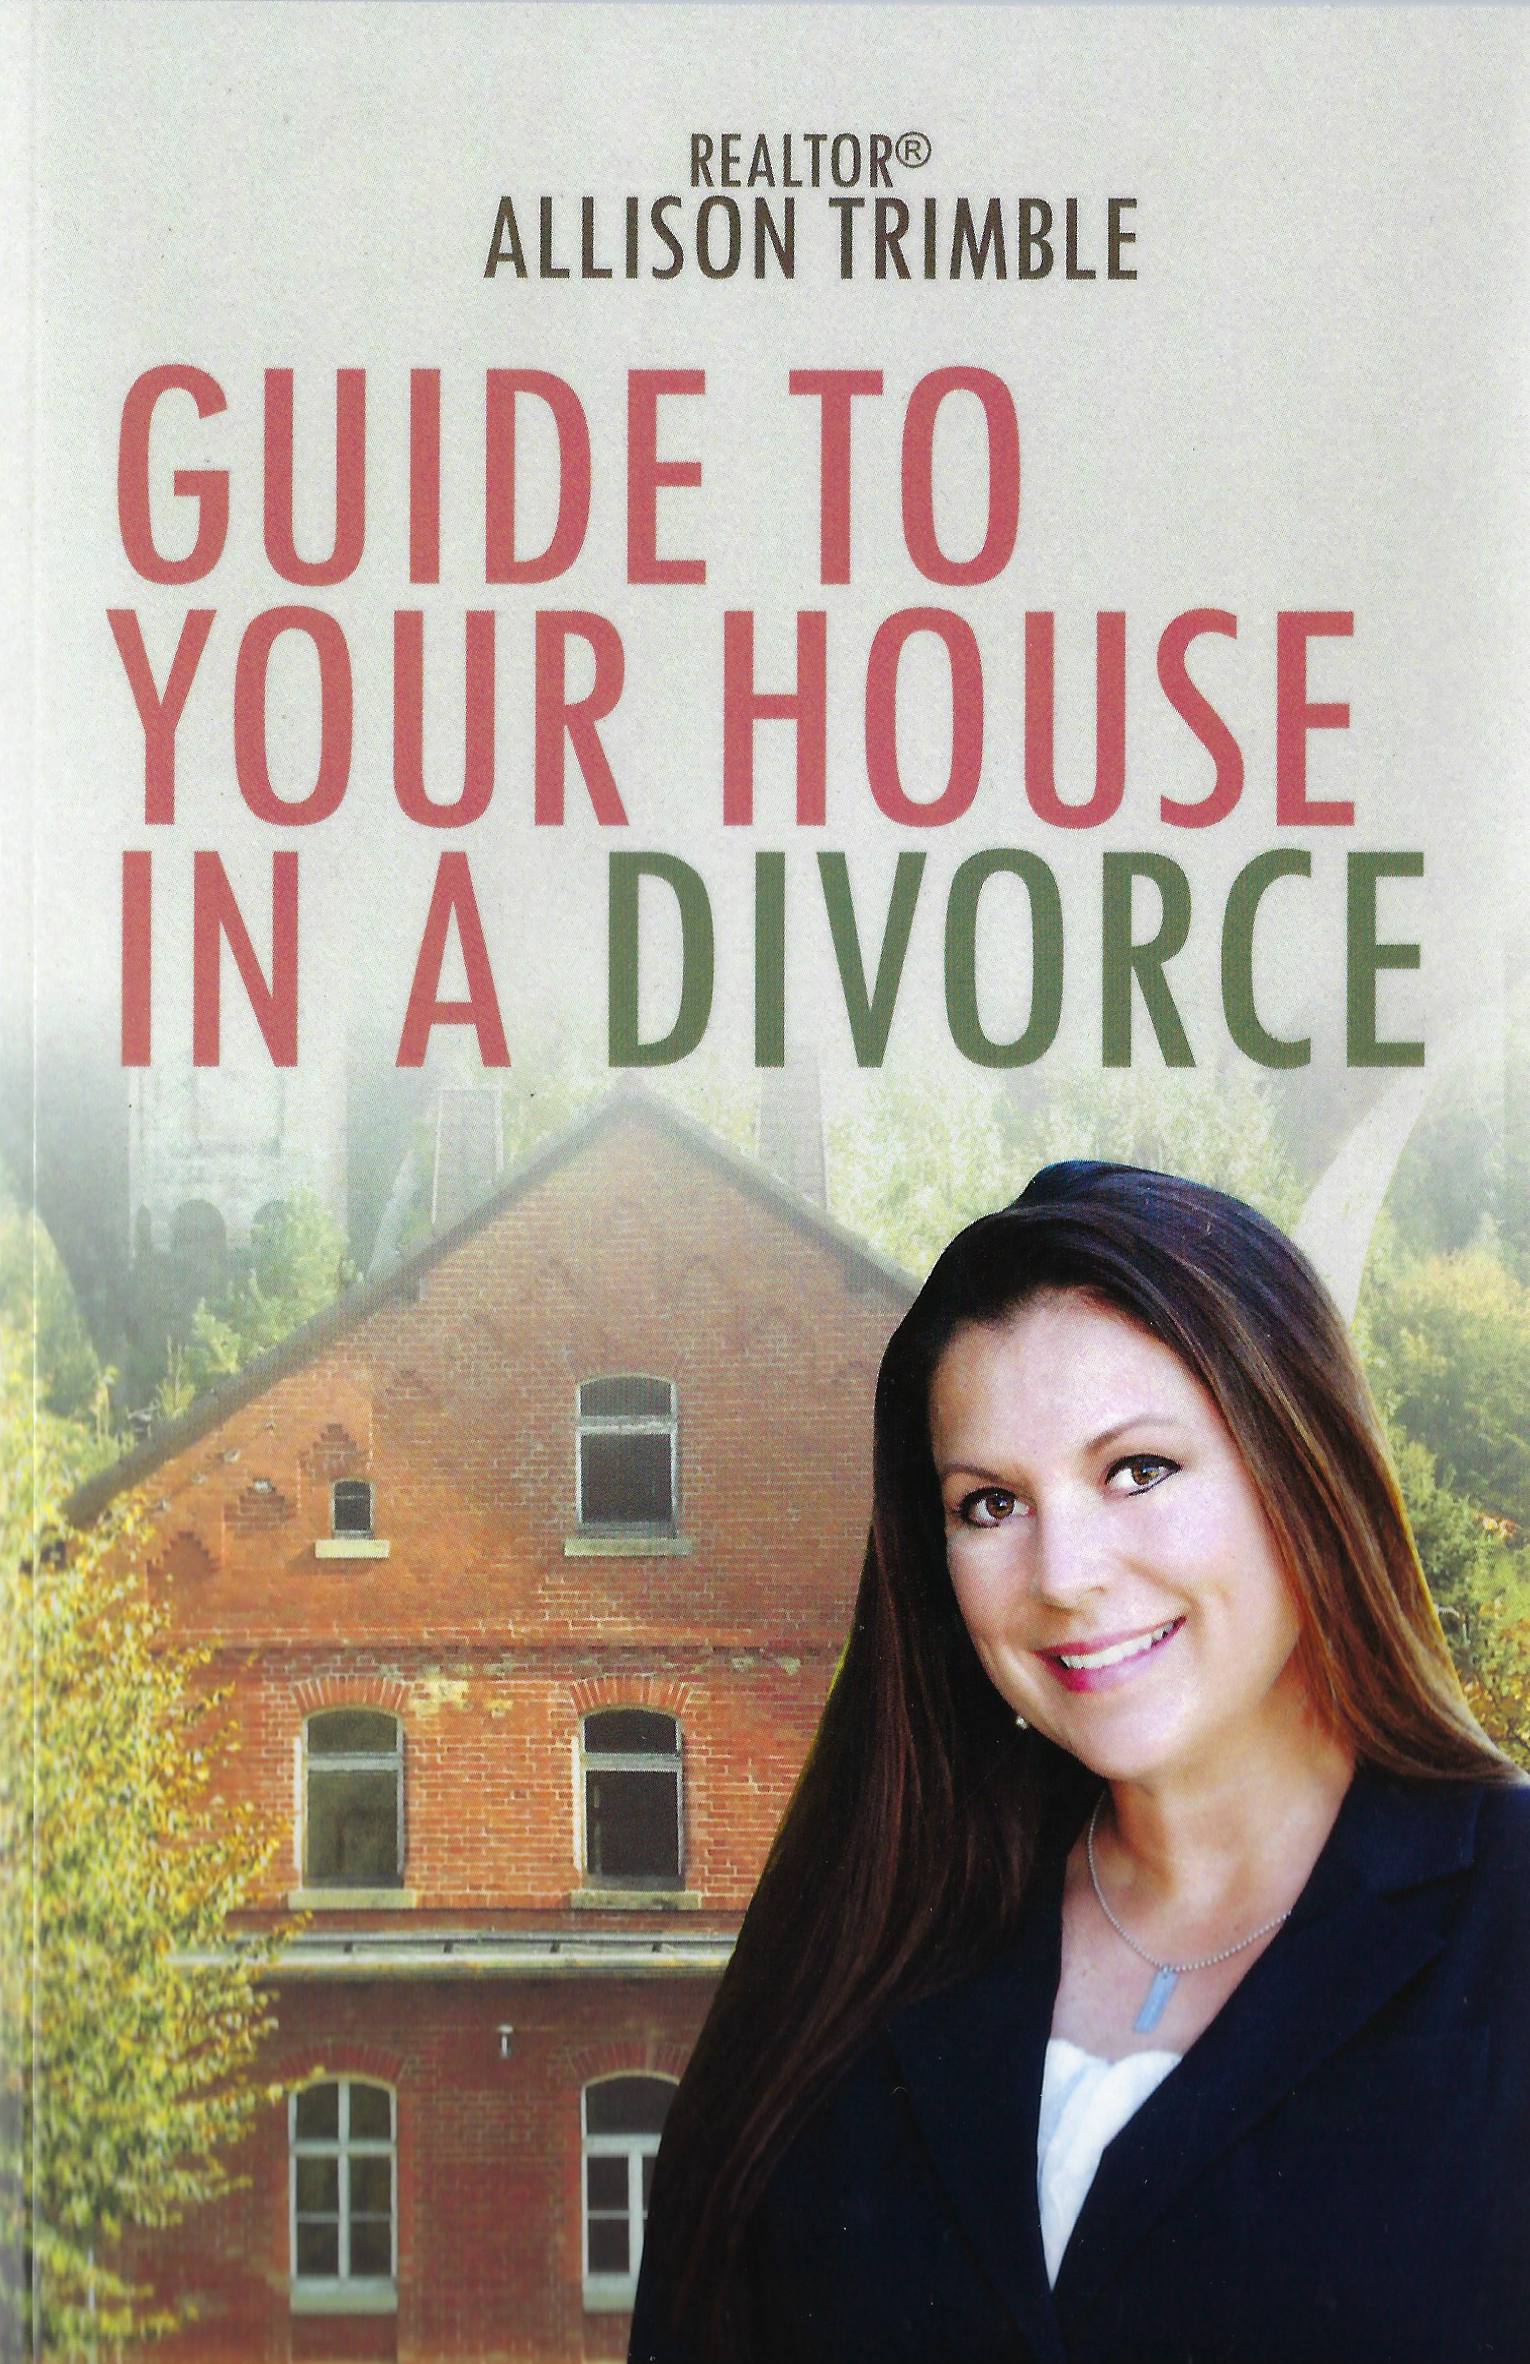 Guide to Your House in a Divorce: Allison Trimble